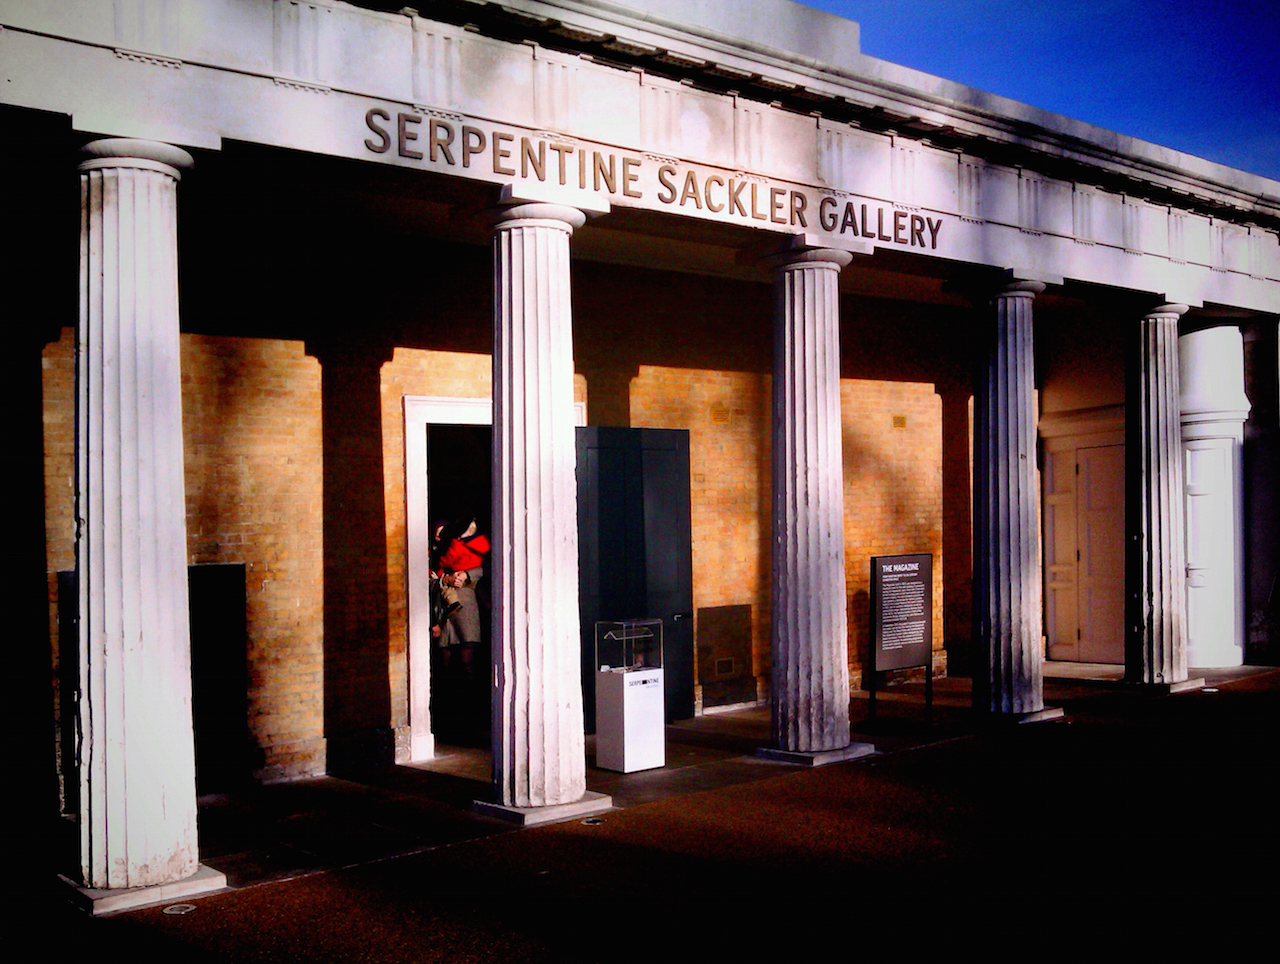 The Serpentine Sackler Gallery (photo by Jose Mesa/Flickr)